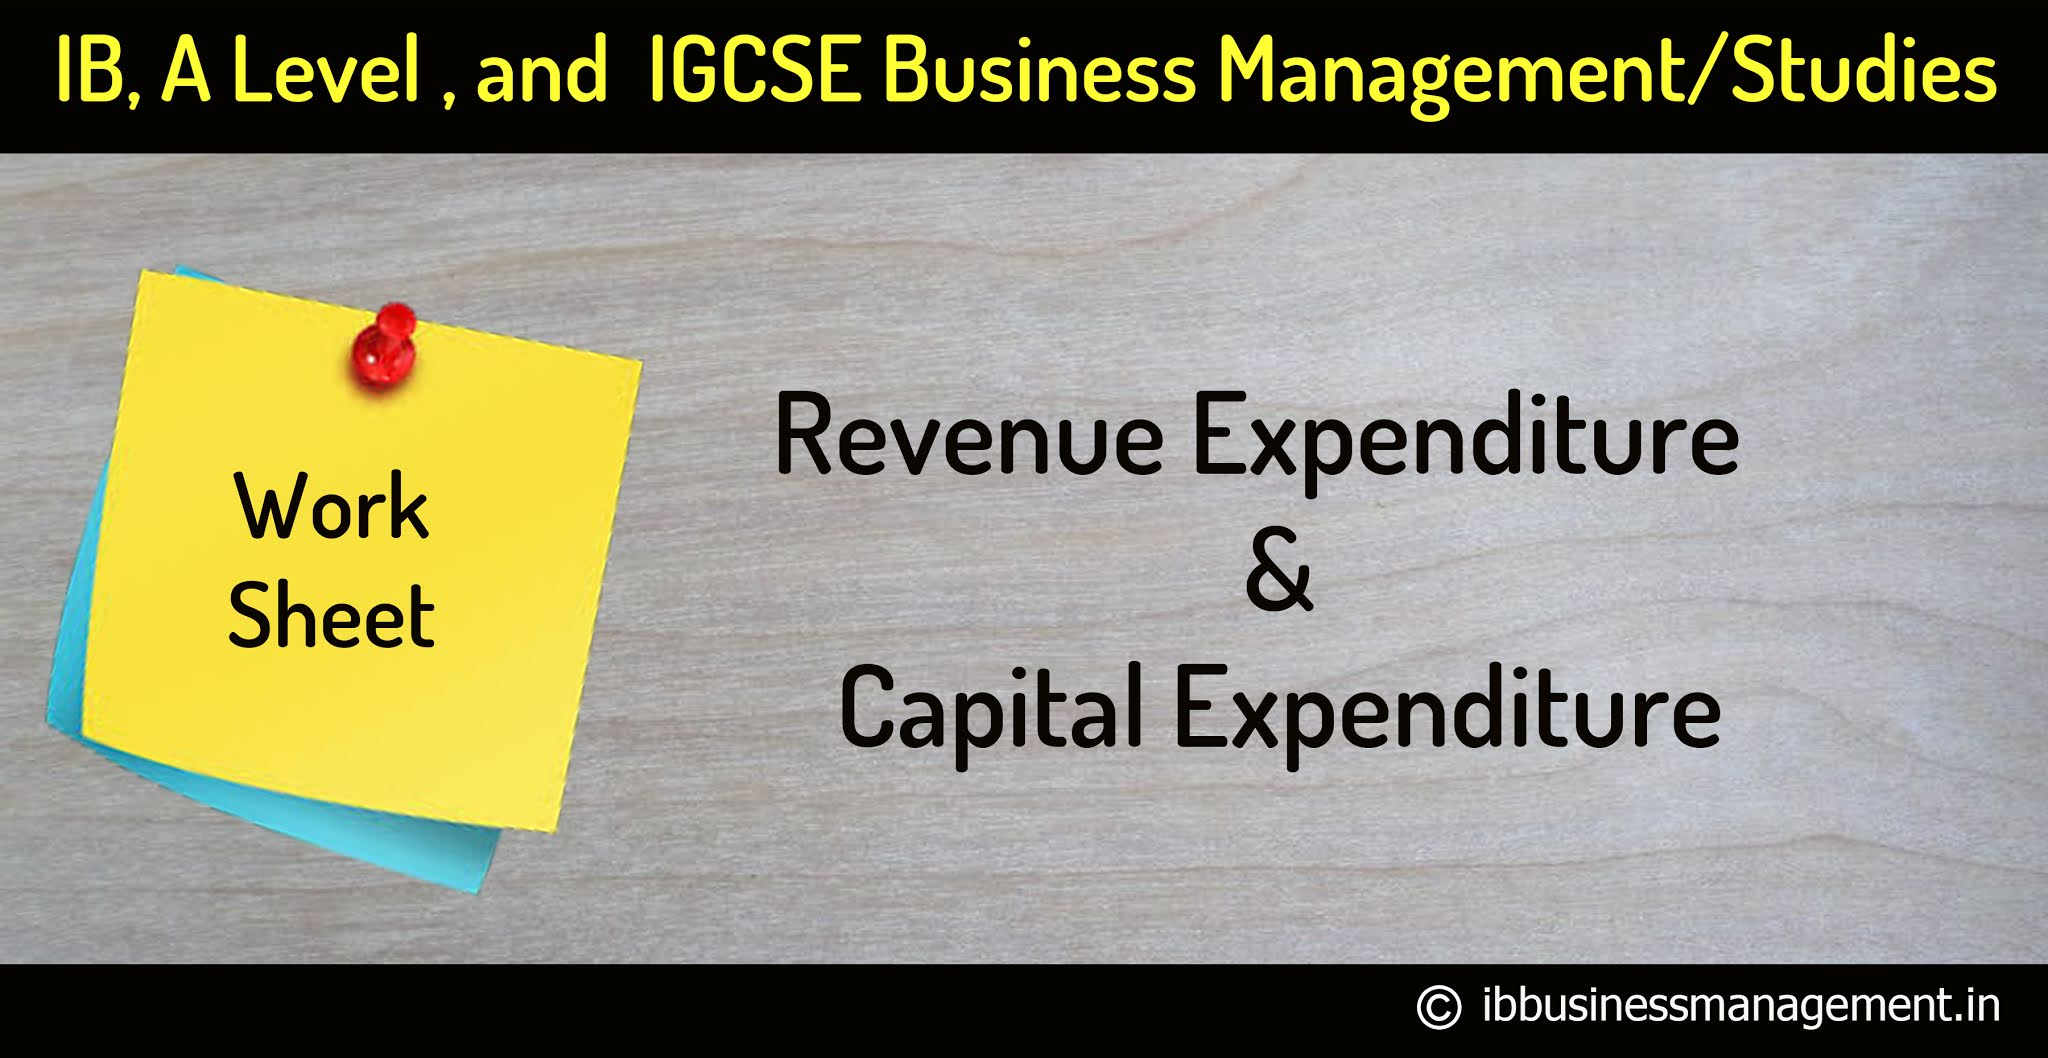 Revenue expenditure and Capital Expenditure  Worksheet for IB, A Level  and IGCSE Students.